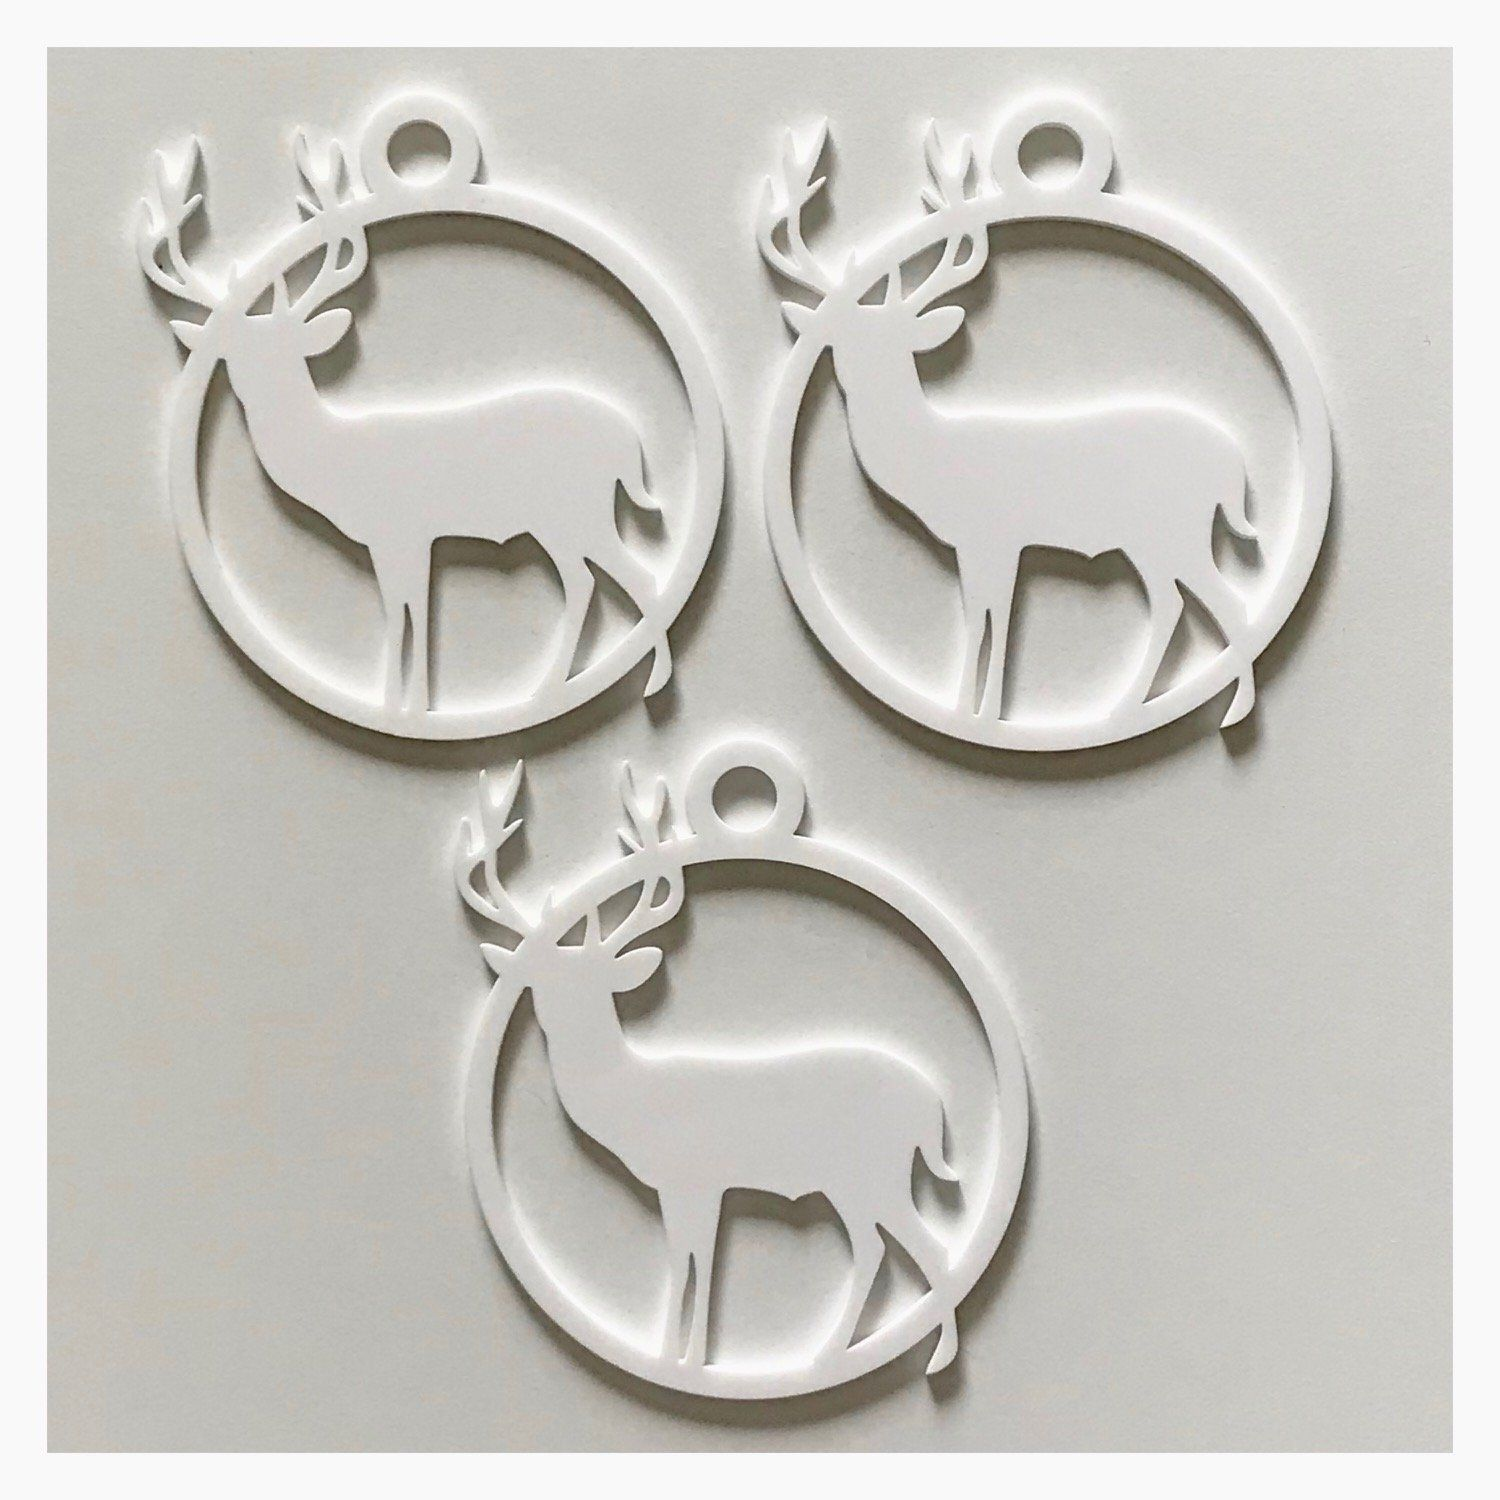 Stag Deer Decoration Hanging Set Of 3 White Plastic Acrylic Country Decor Garden